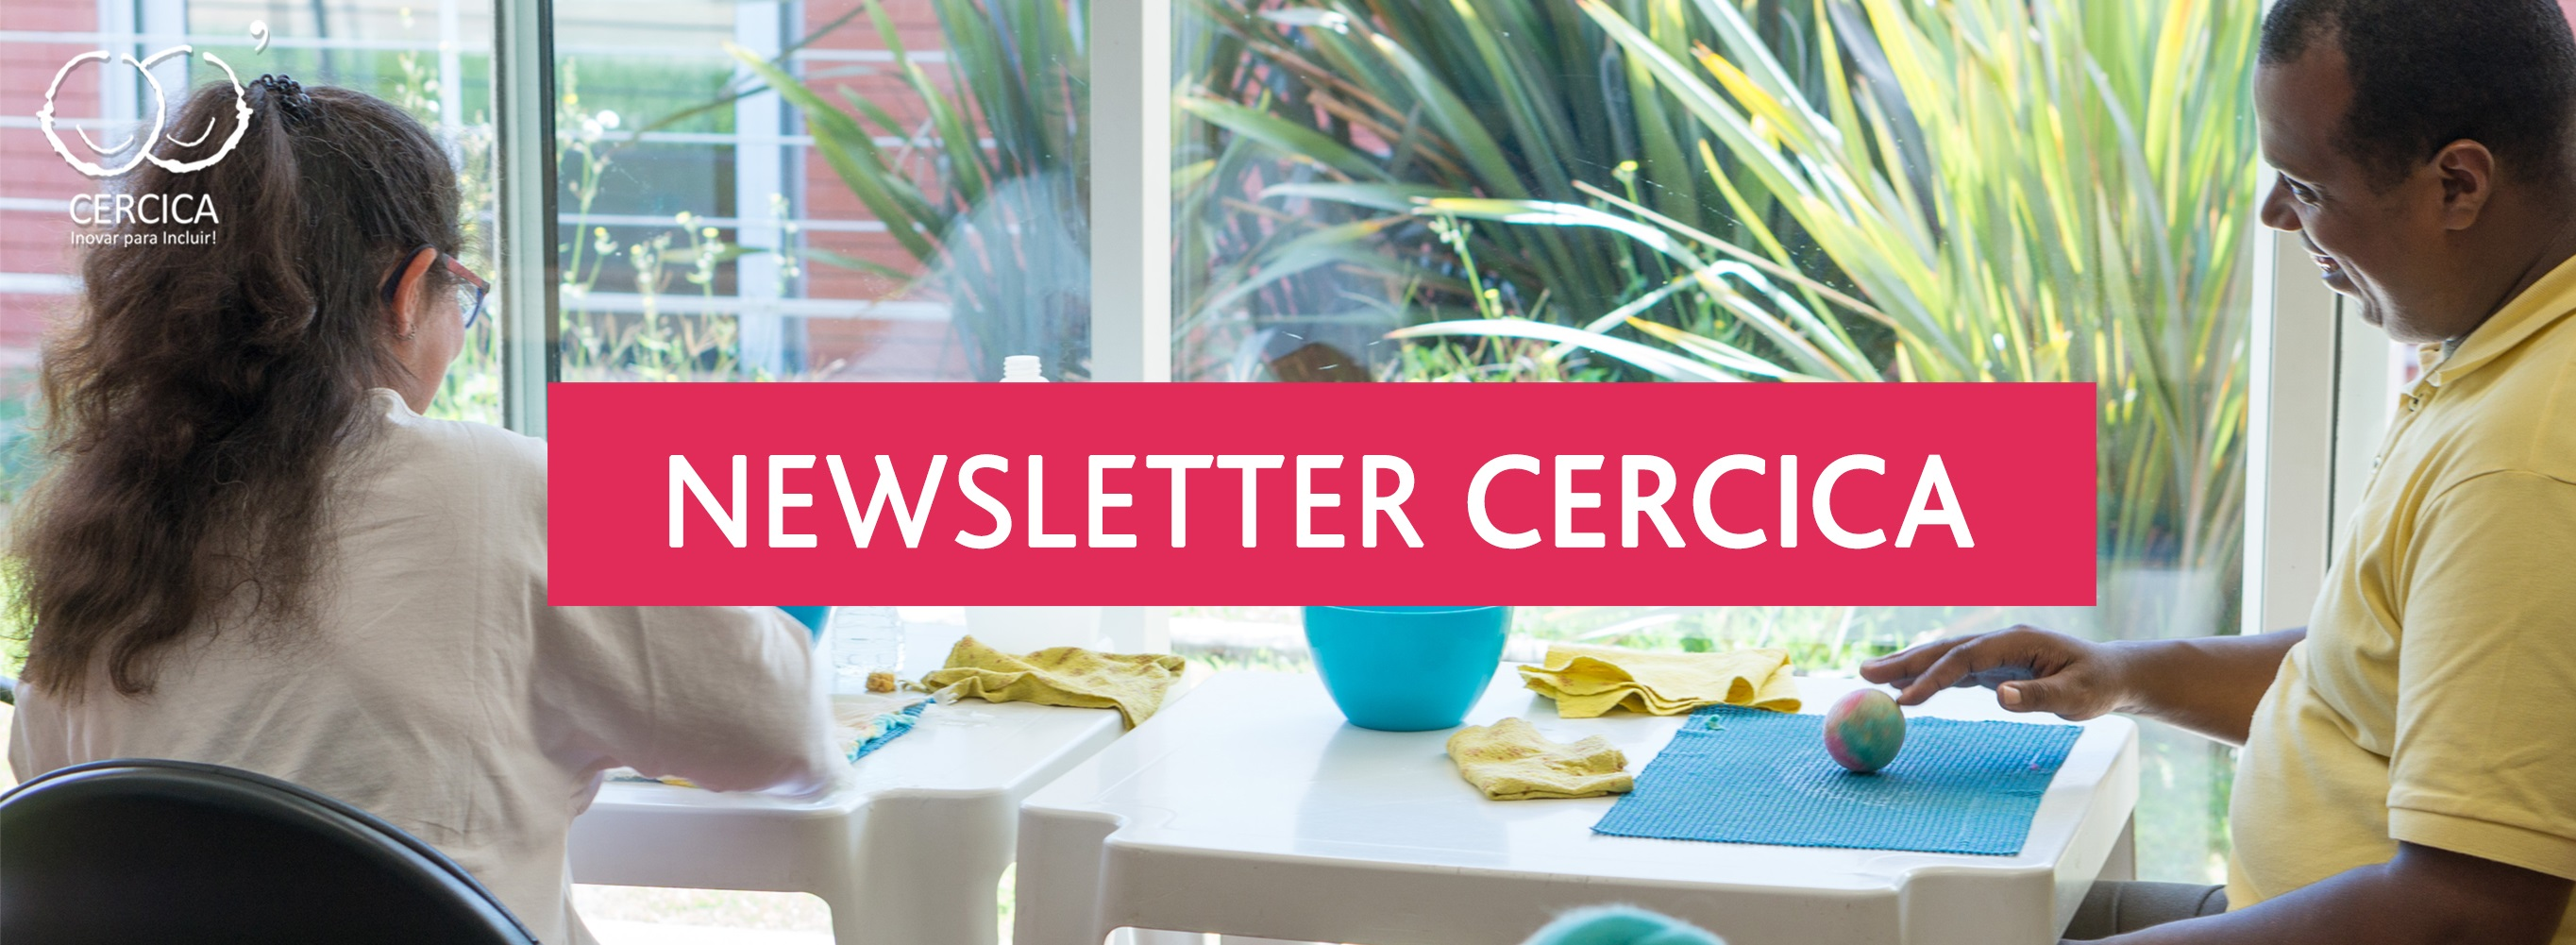 Newsletters CERCICA